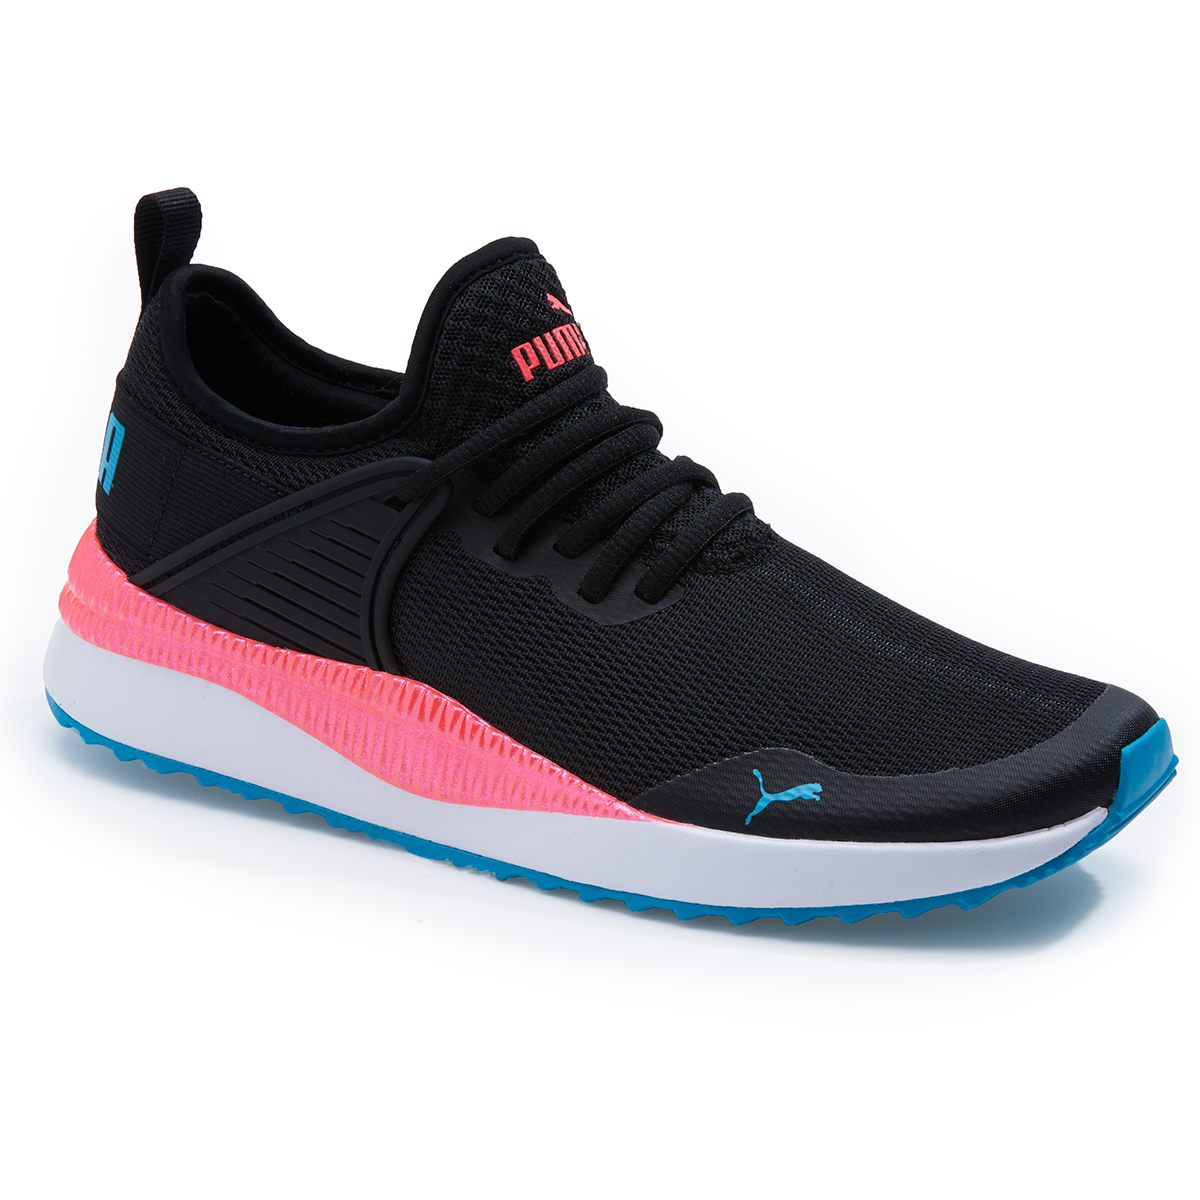 Puma Women's Pacer Next Cage Athletic Sneakers - Black, 7.5